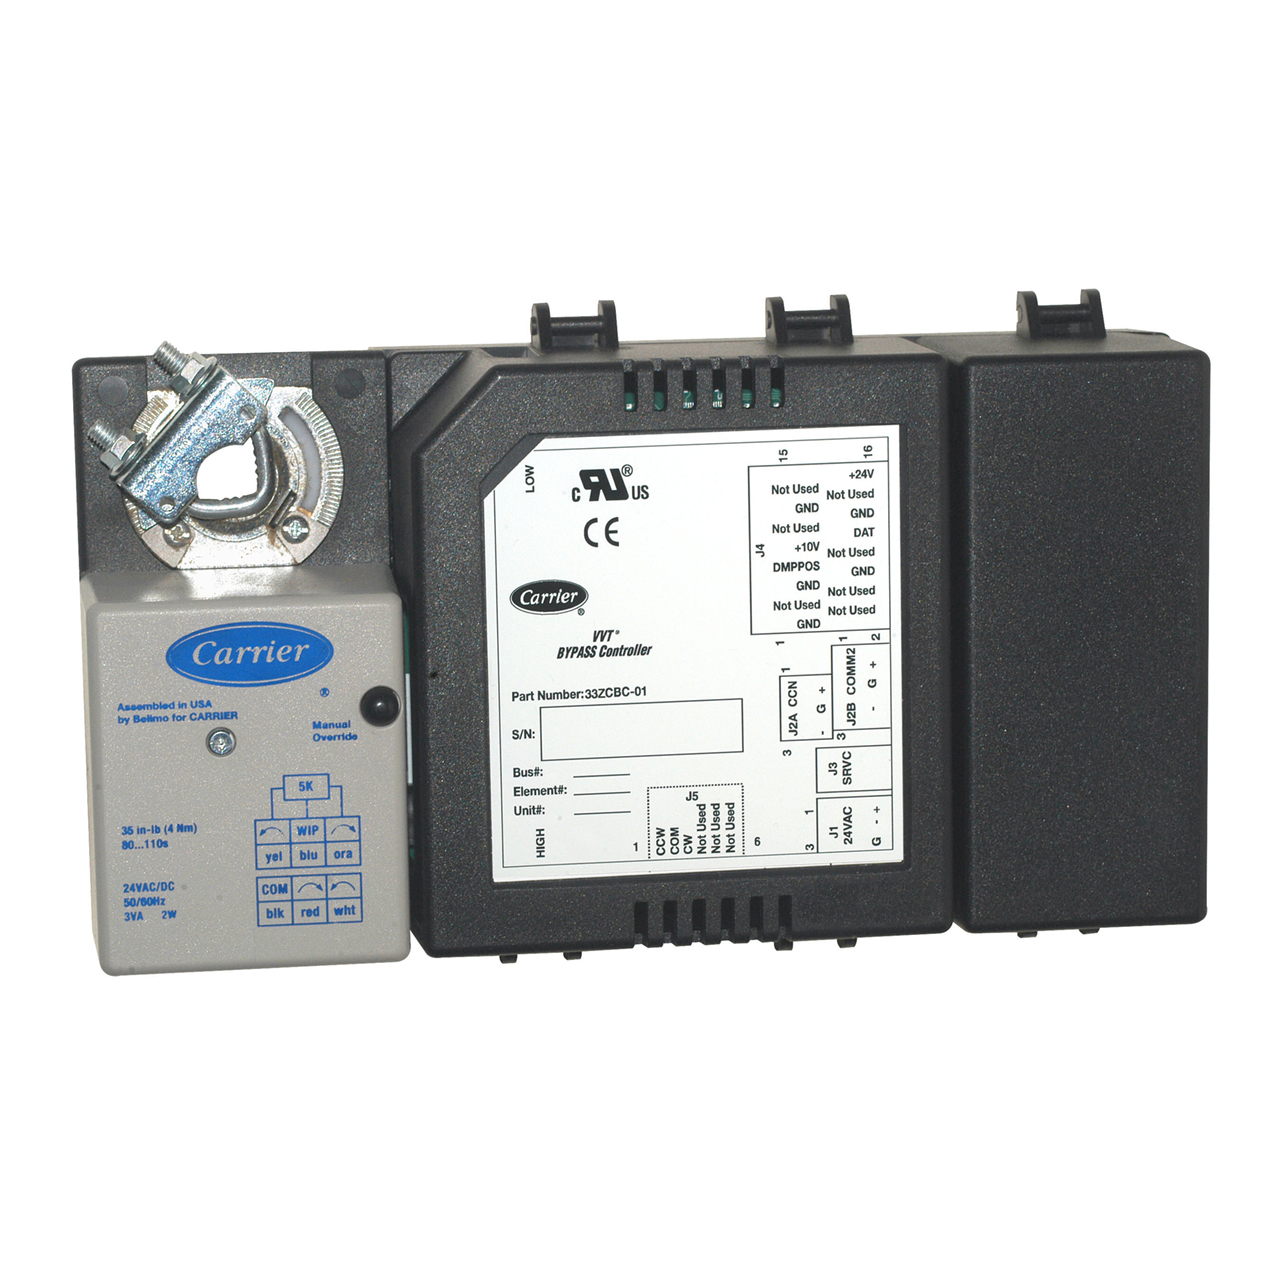 carrier-33ZCBC-01-vvt-bypass-producted-integrated-controller